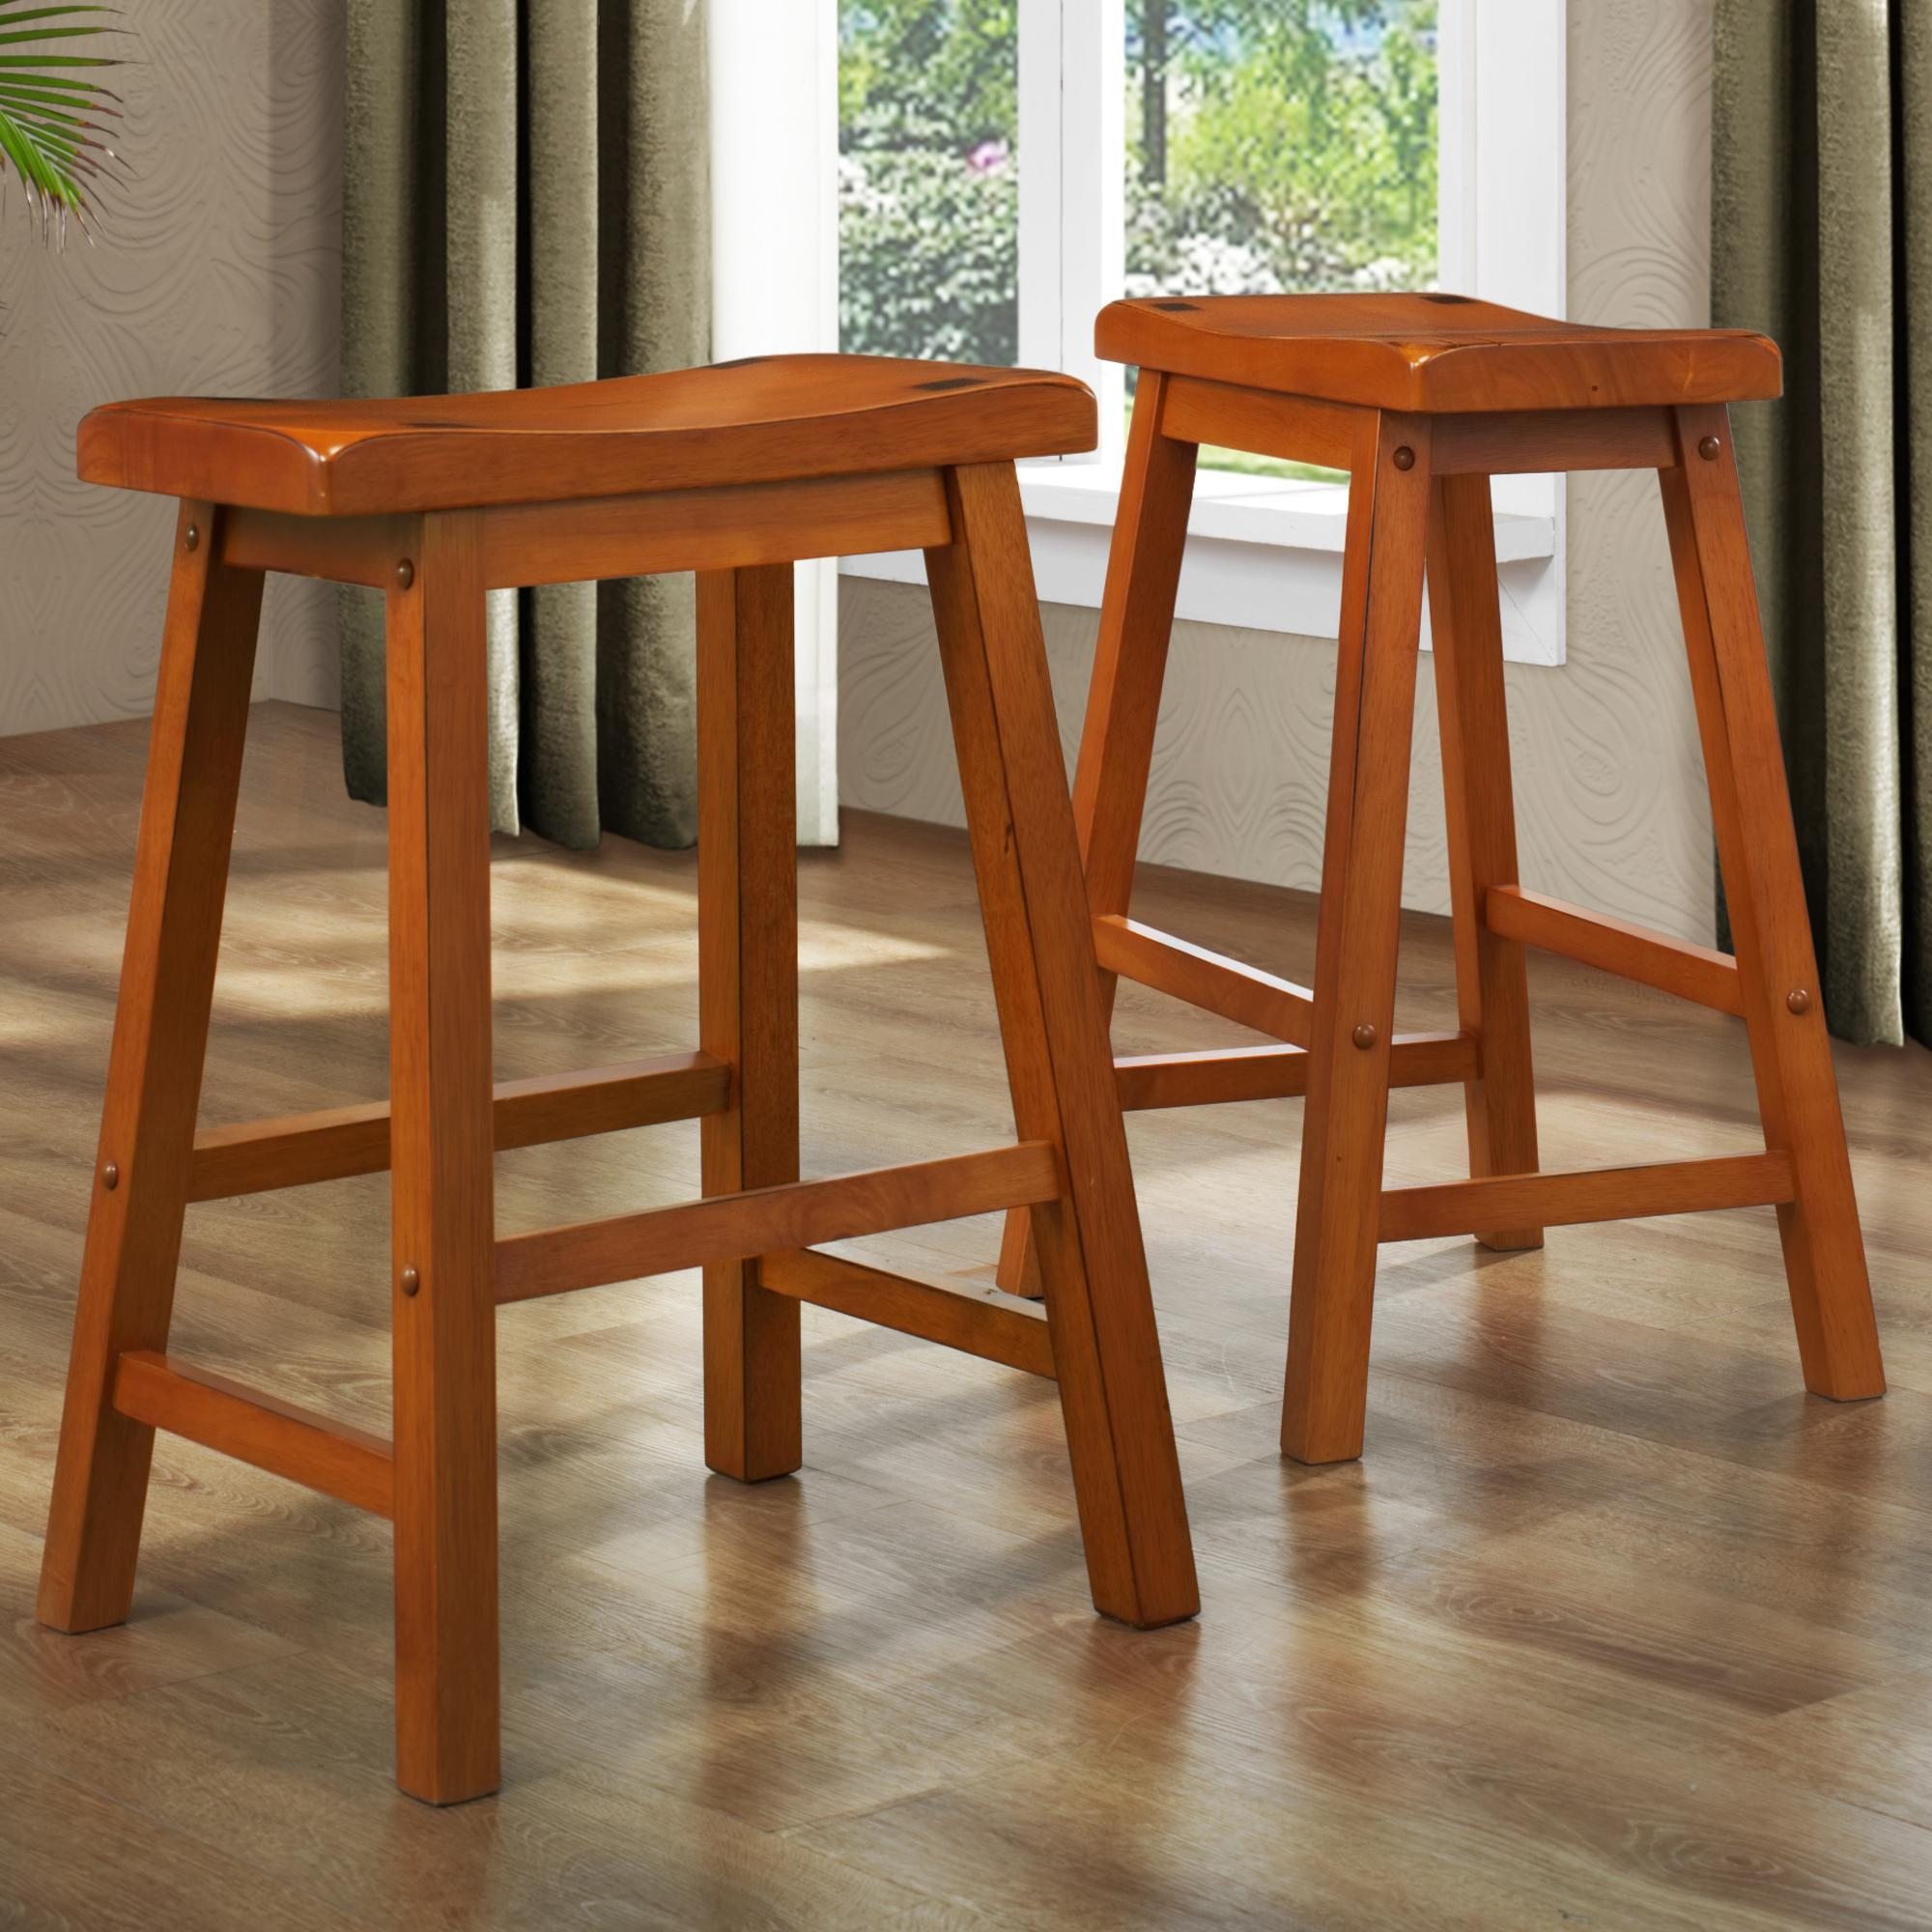 Homelegance 5302 24 Inch Stool - Item Number: 5302A24